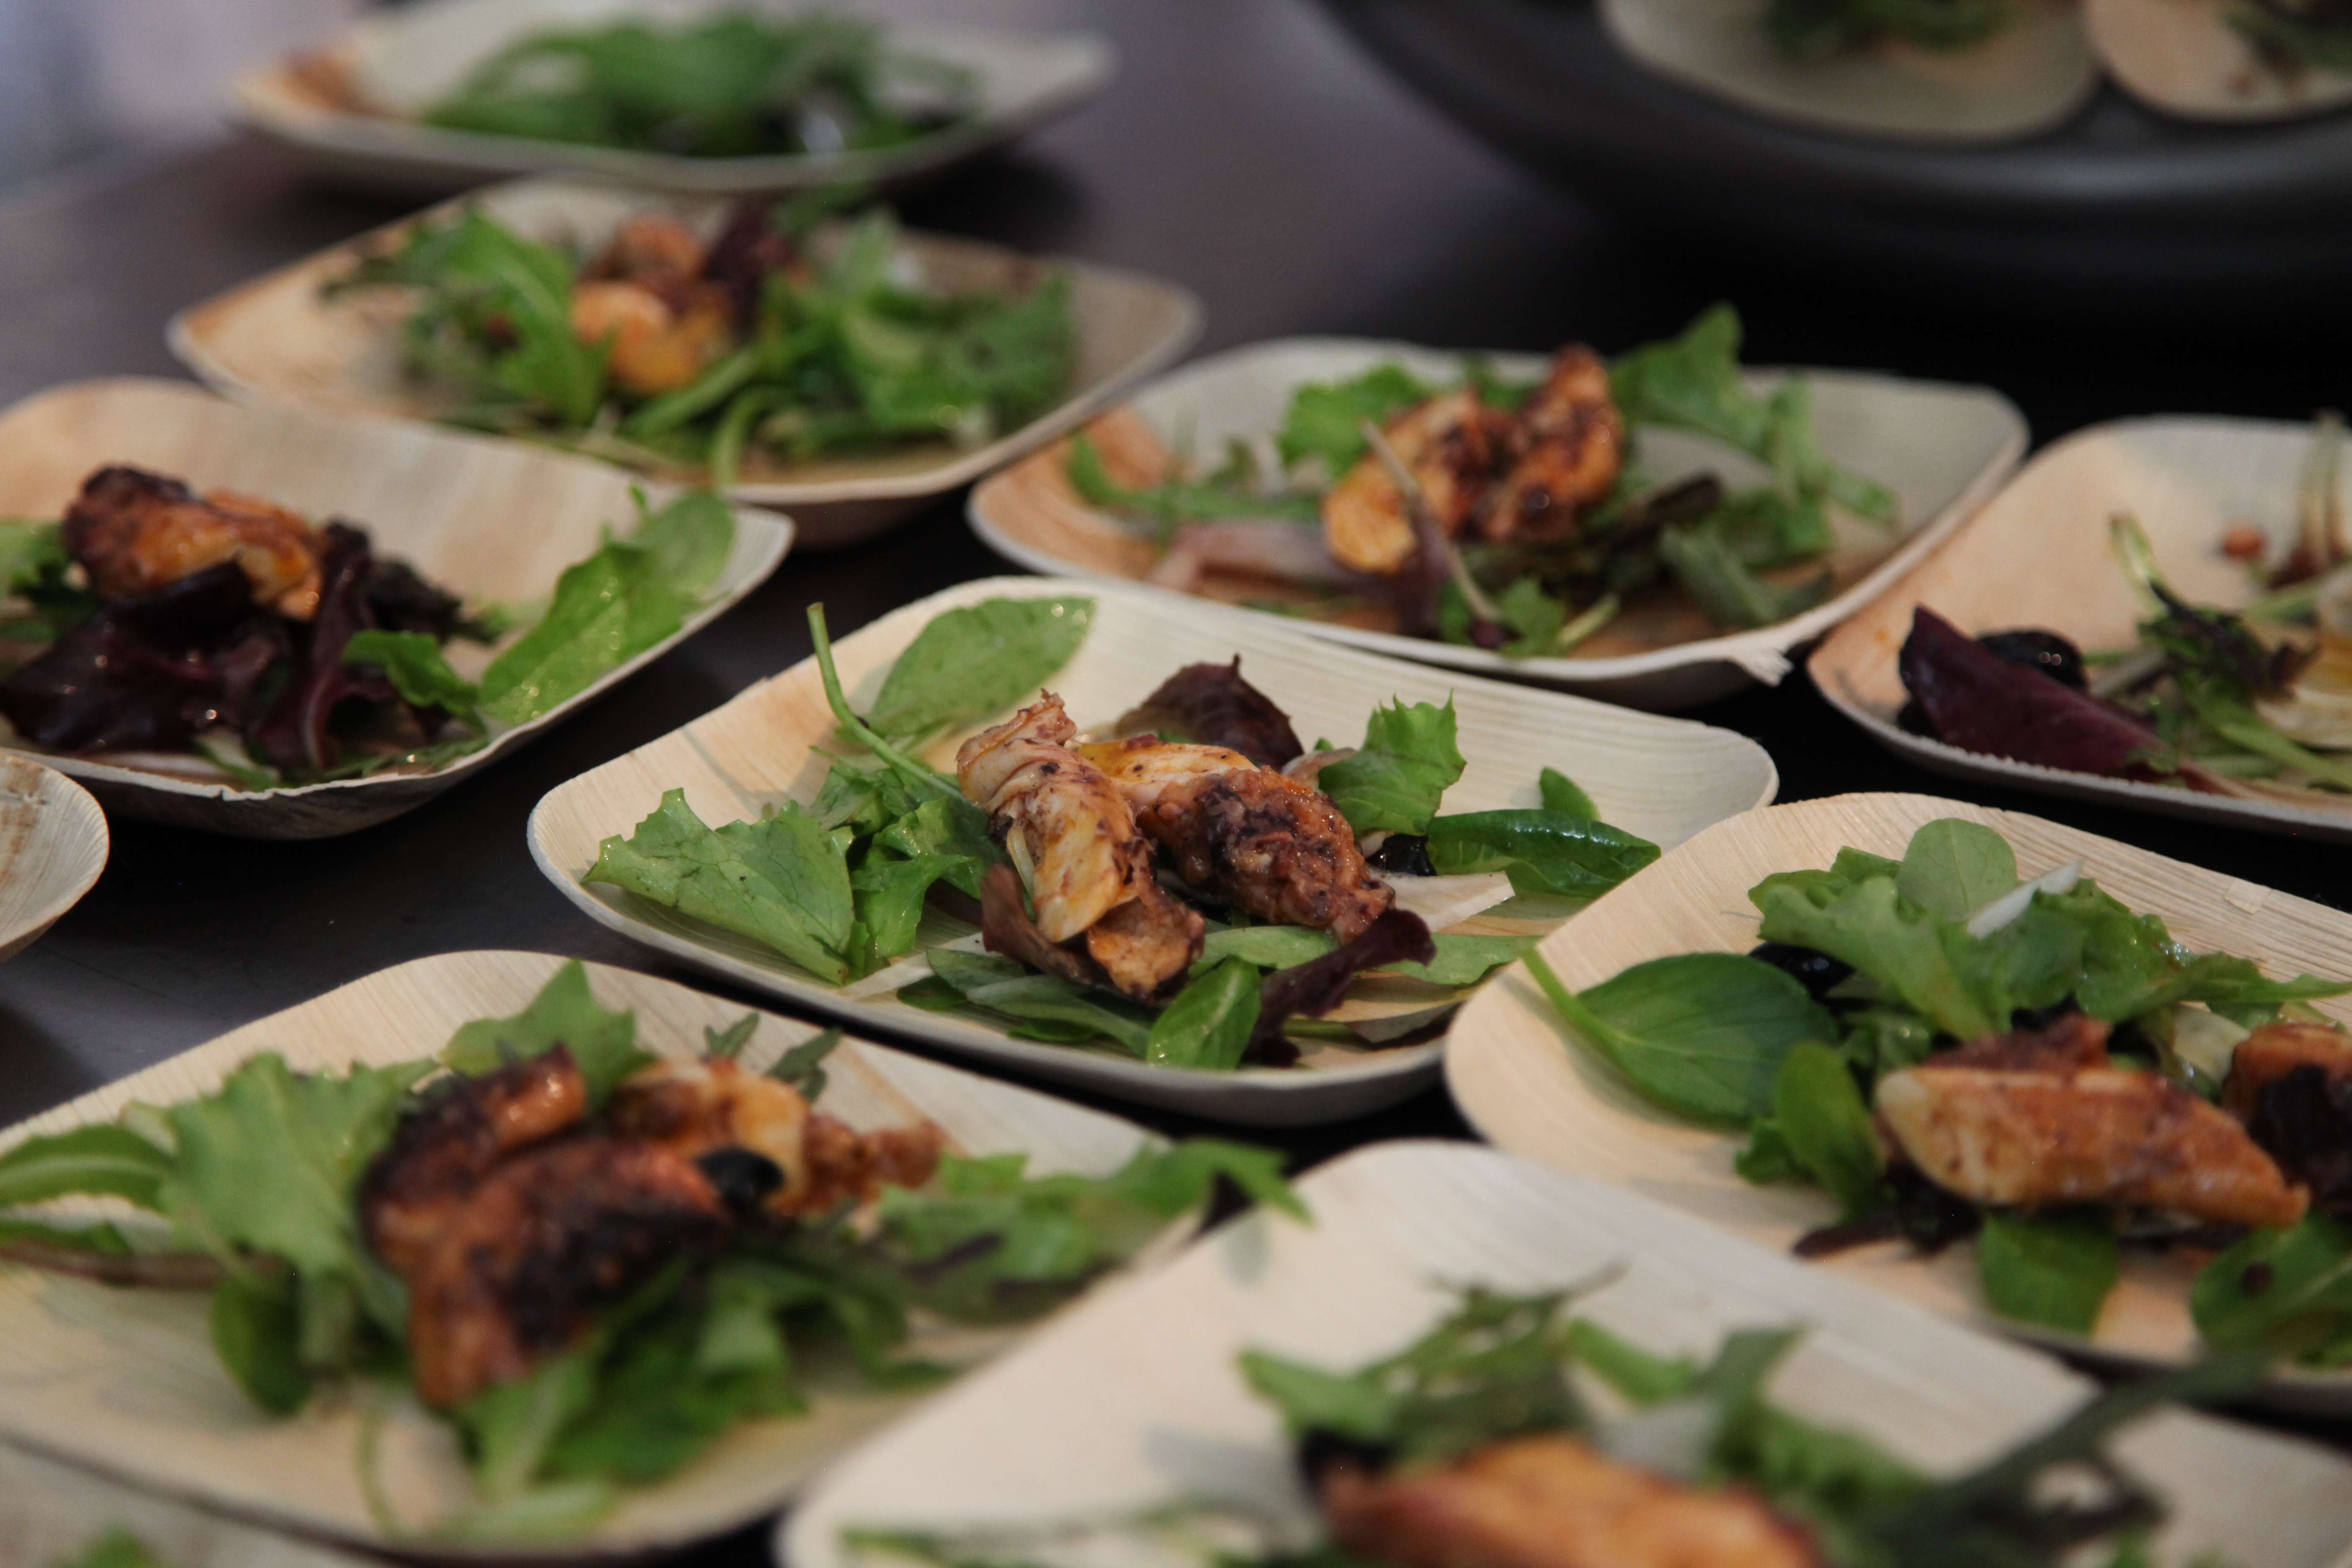 Best New Chef Dish: Grilled Octopus Salad